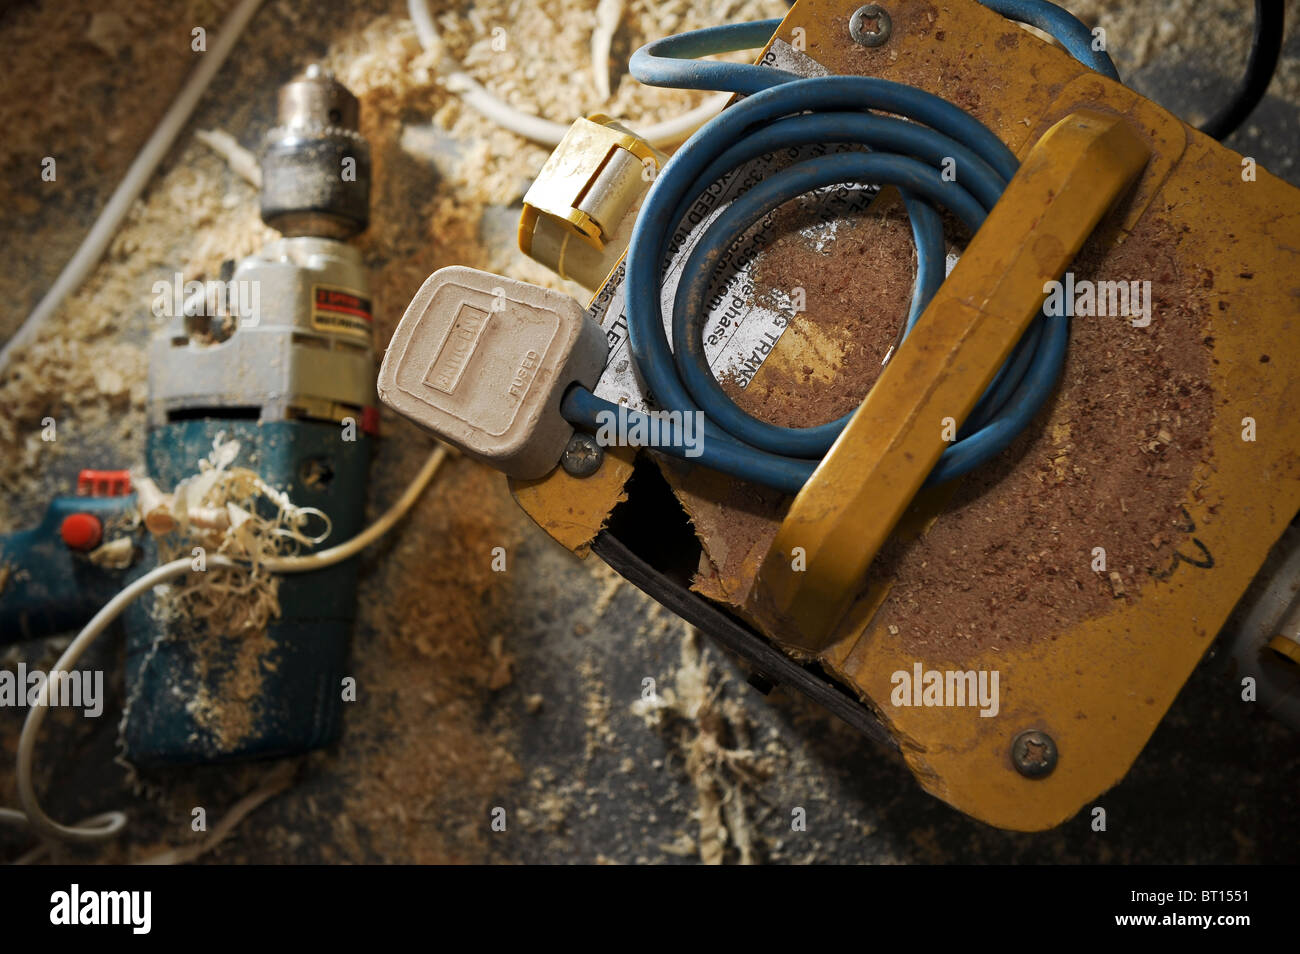 Dangerous And Messy Workshop With Unsafe Power Tools Such As A Stock Photo 31988125 Alamy